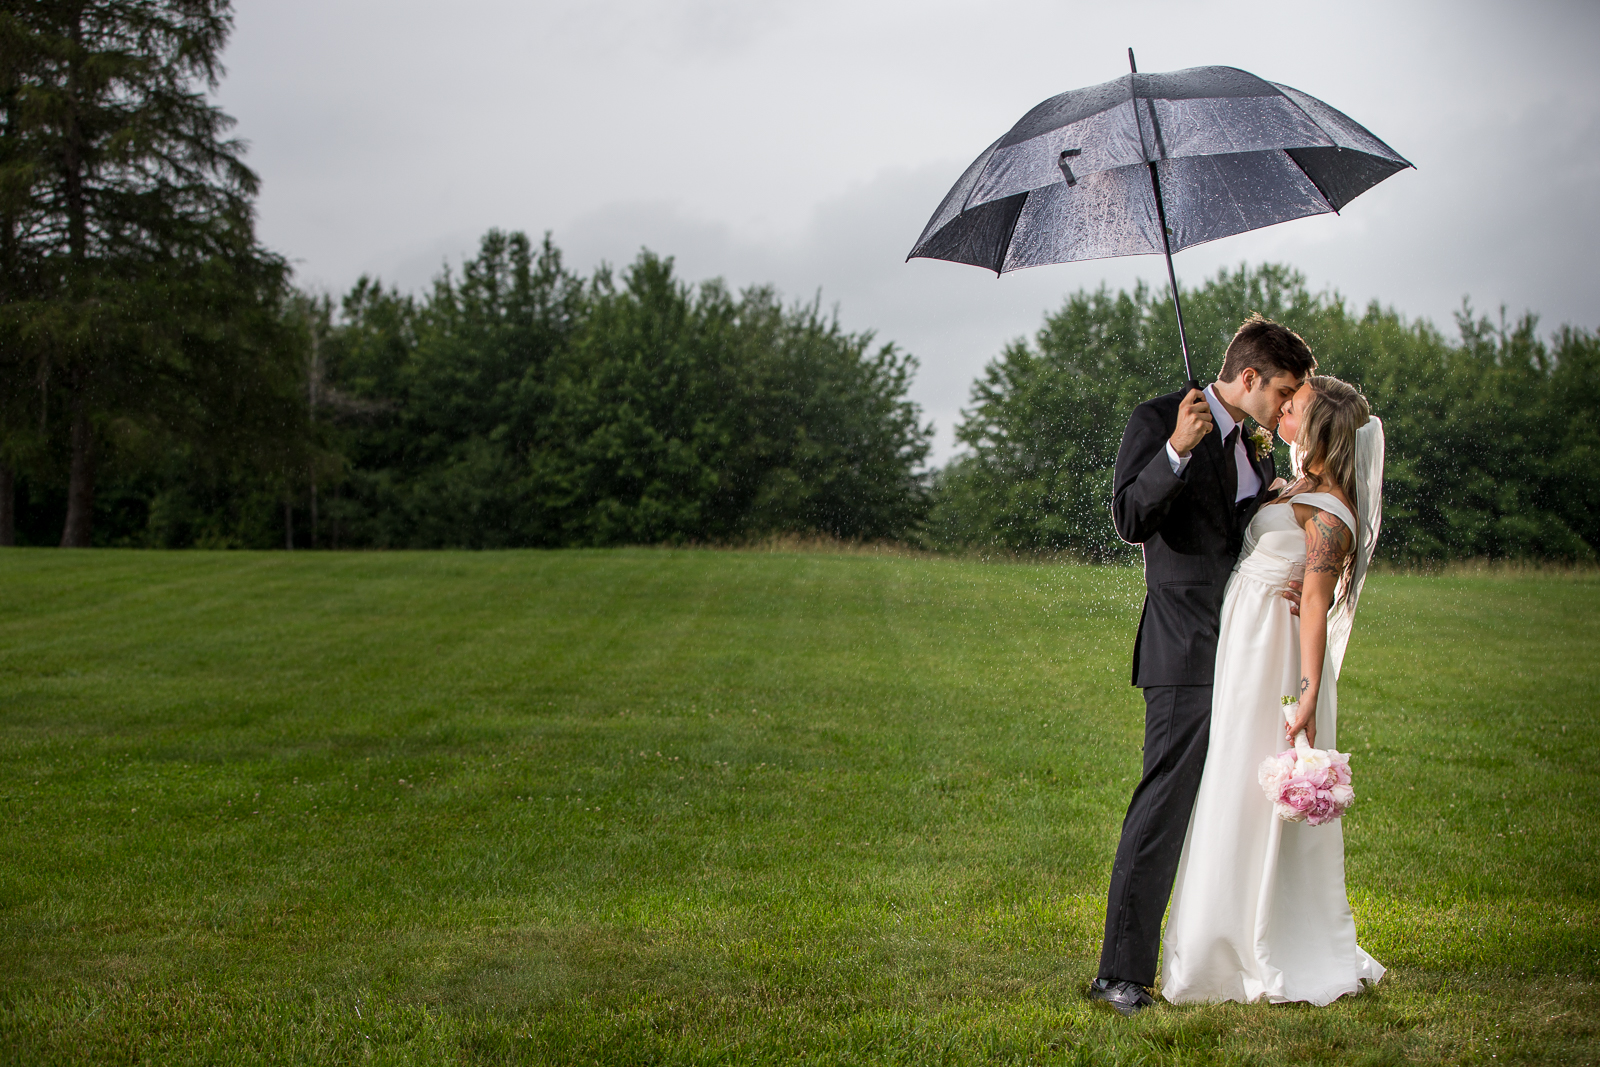 Four_Wings_Photography_Wedding_Red_Barn_at_Hampshire_College-33.jpg